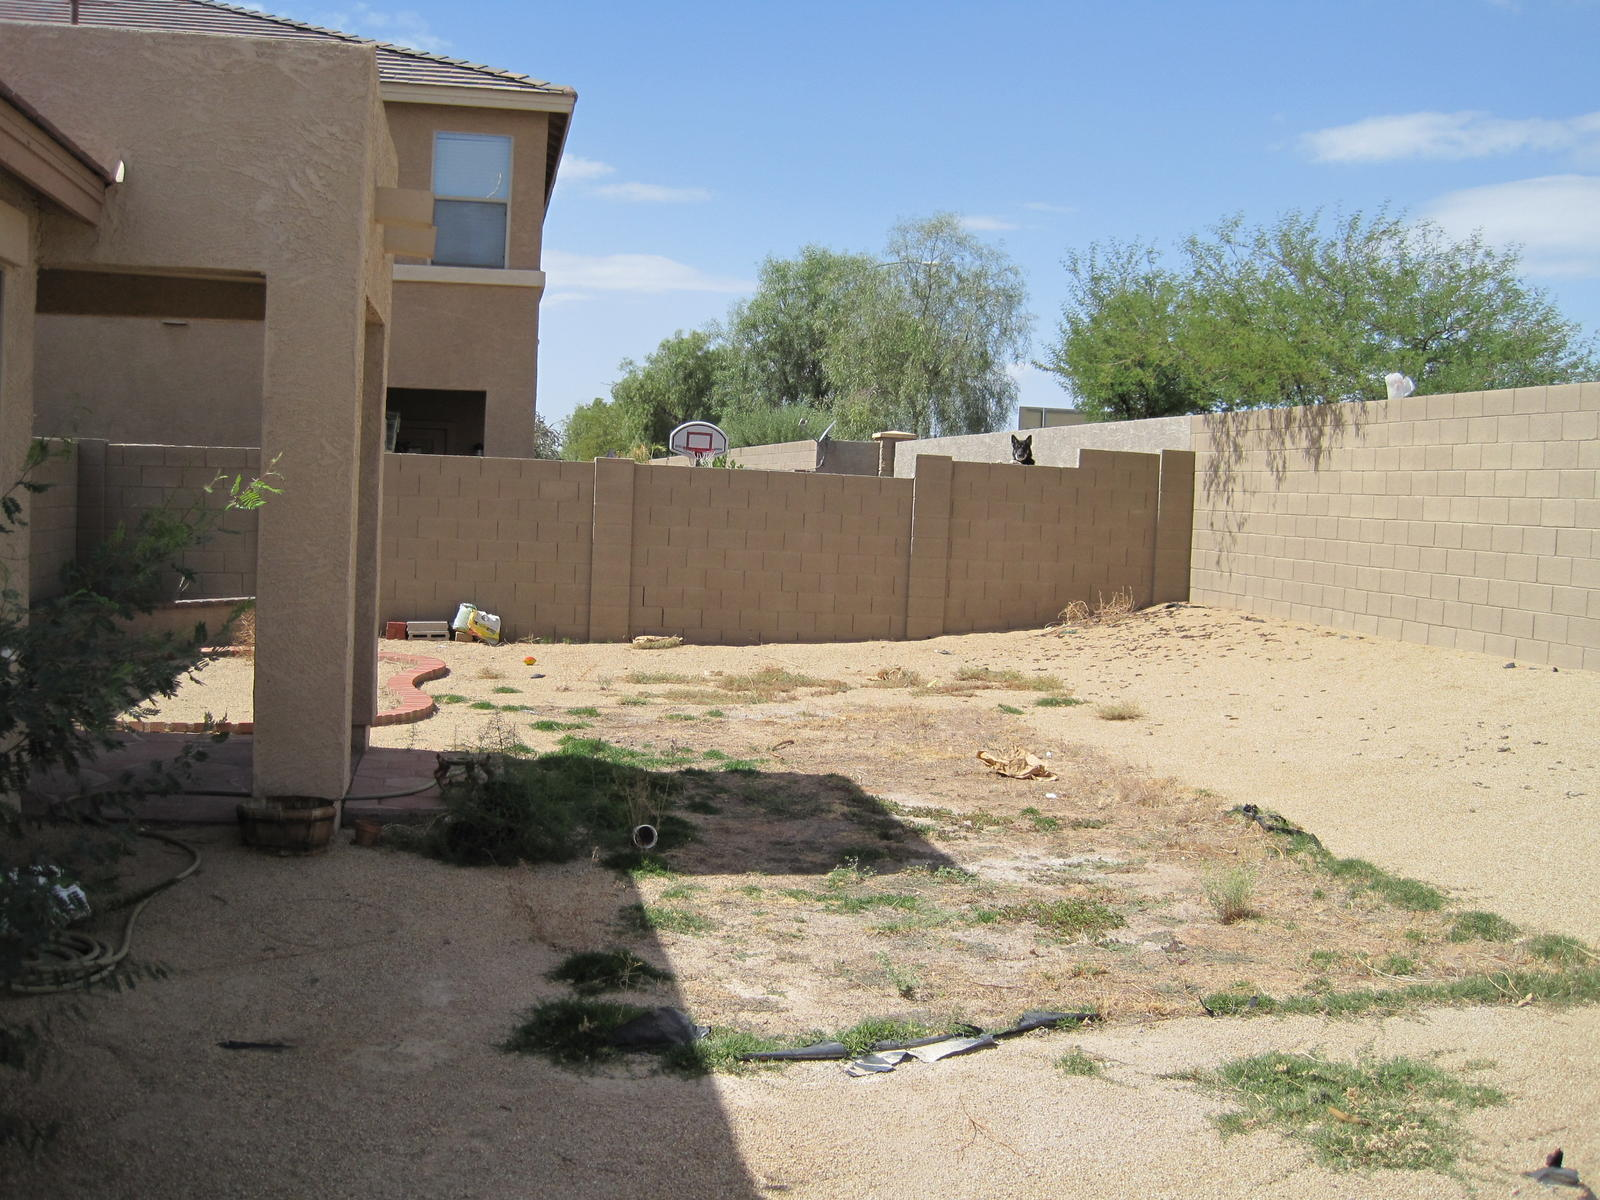 Whats would be the cheapest way to landscape this yard?